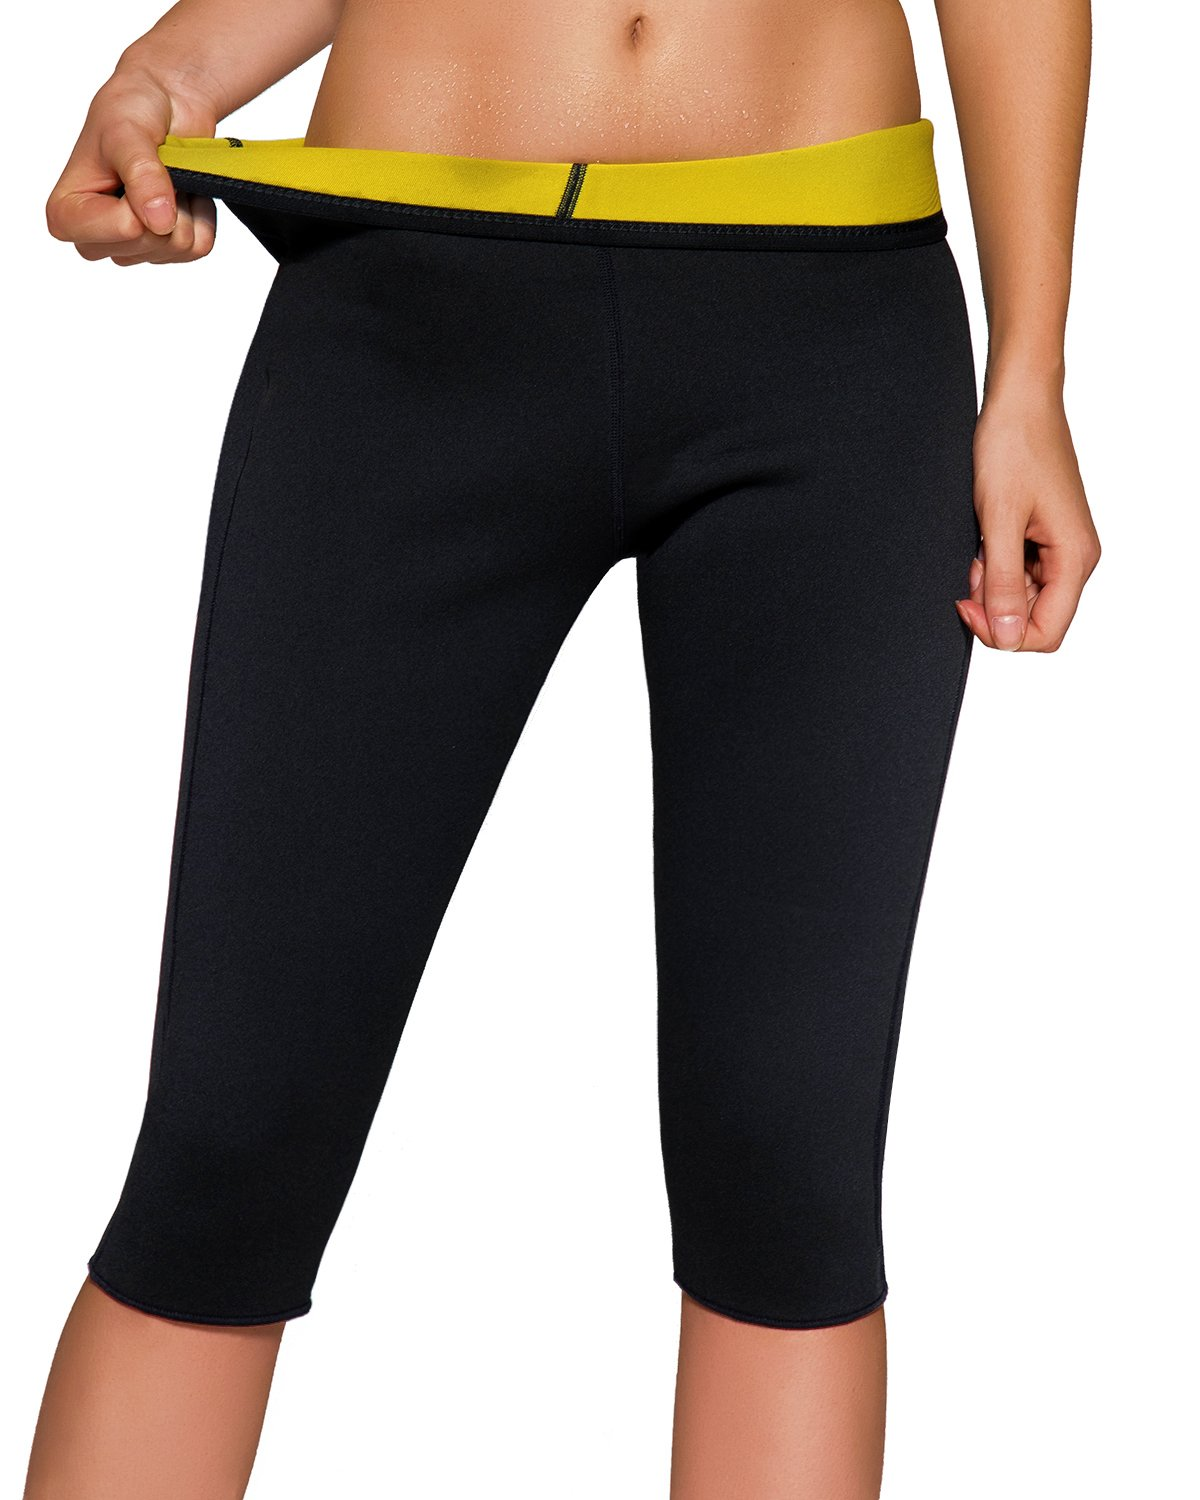 Roseate Women's Slimming Pants High Waist Body Shaper Thermo Sweat Workout Capri Yellow S